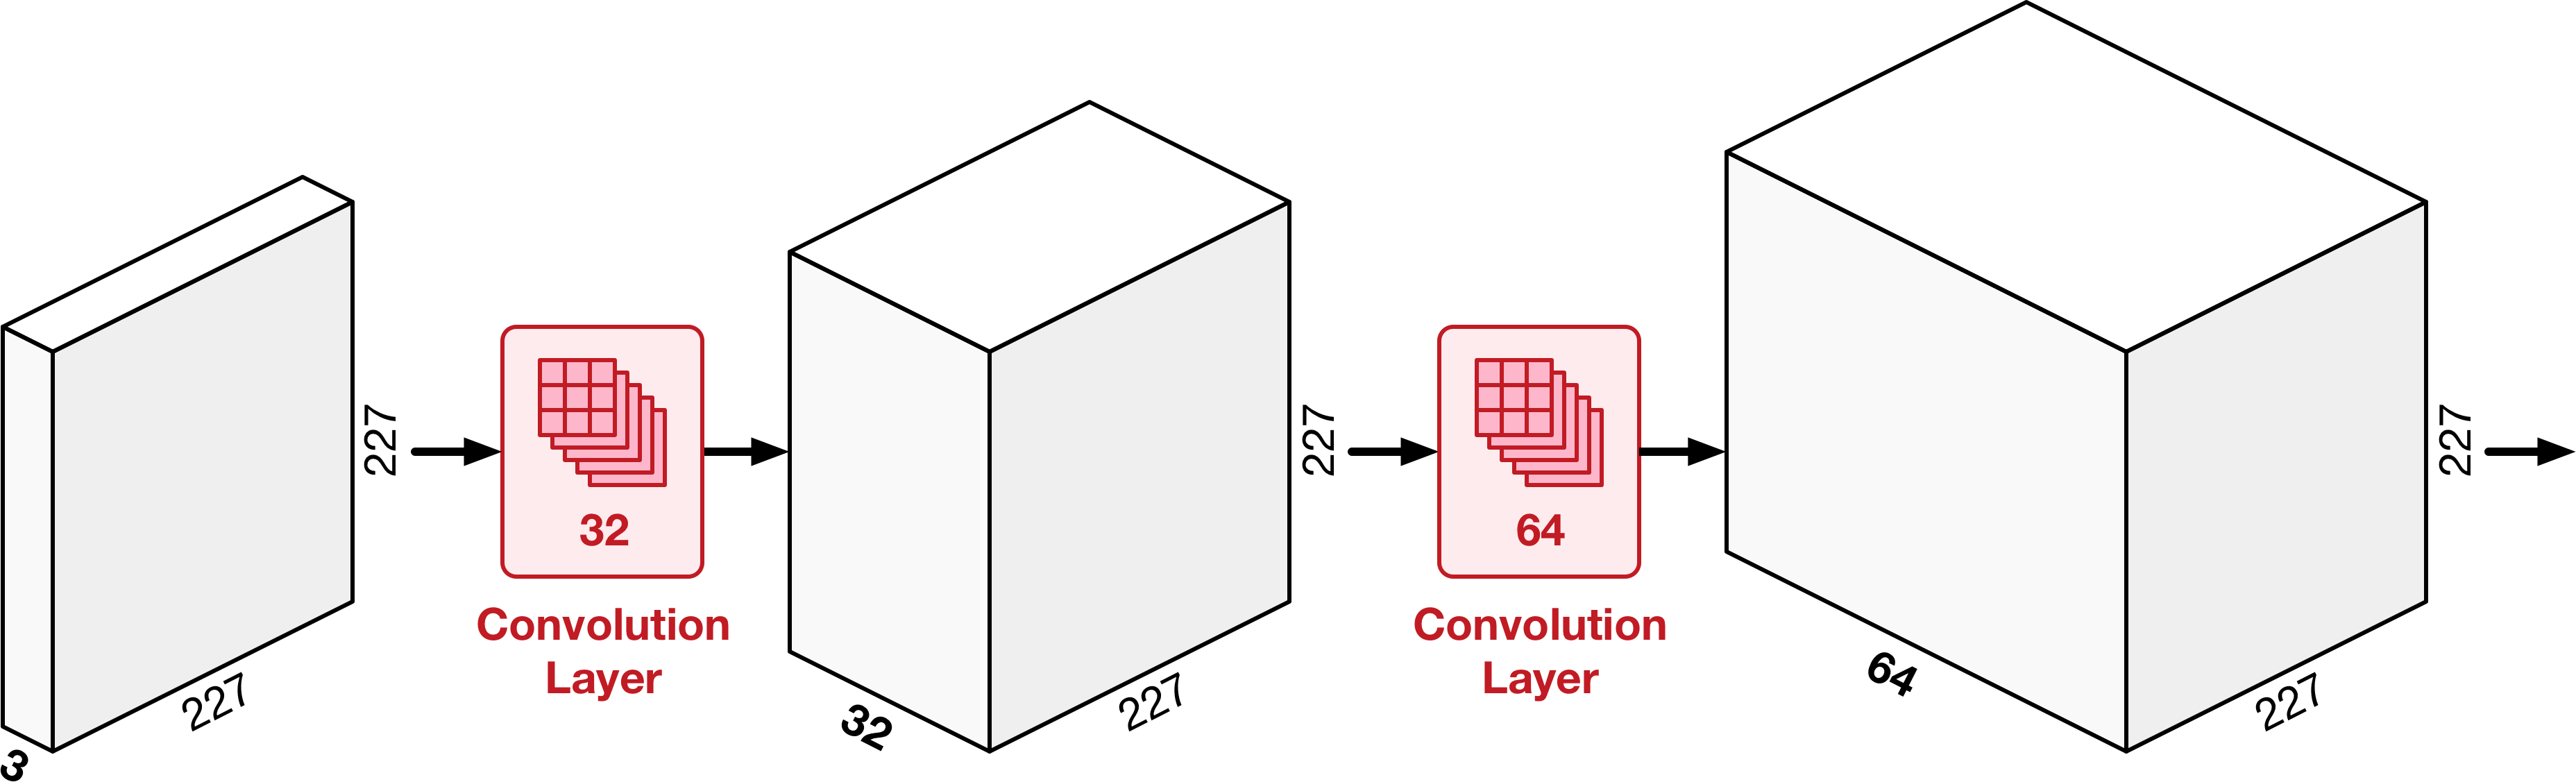 The number of filters in the convolution layer determines the depth of its output image